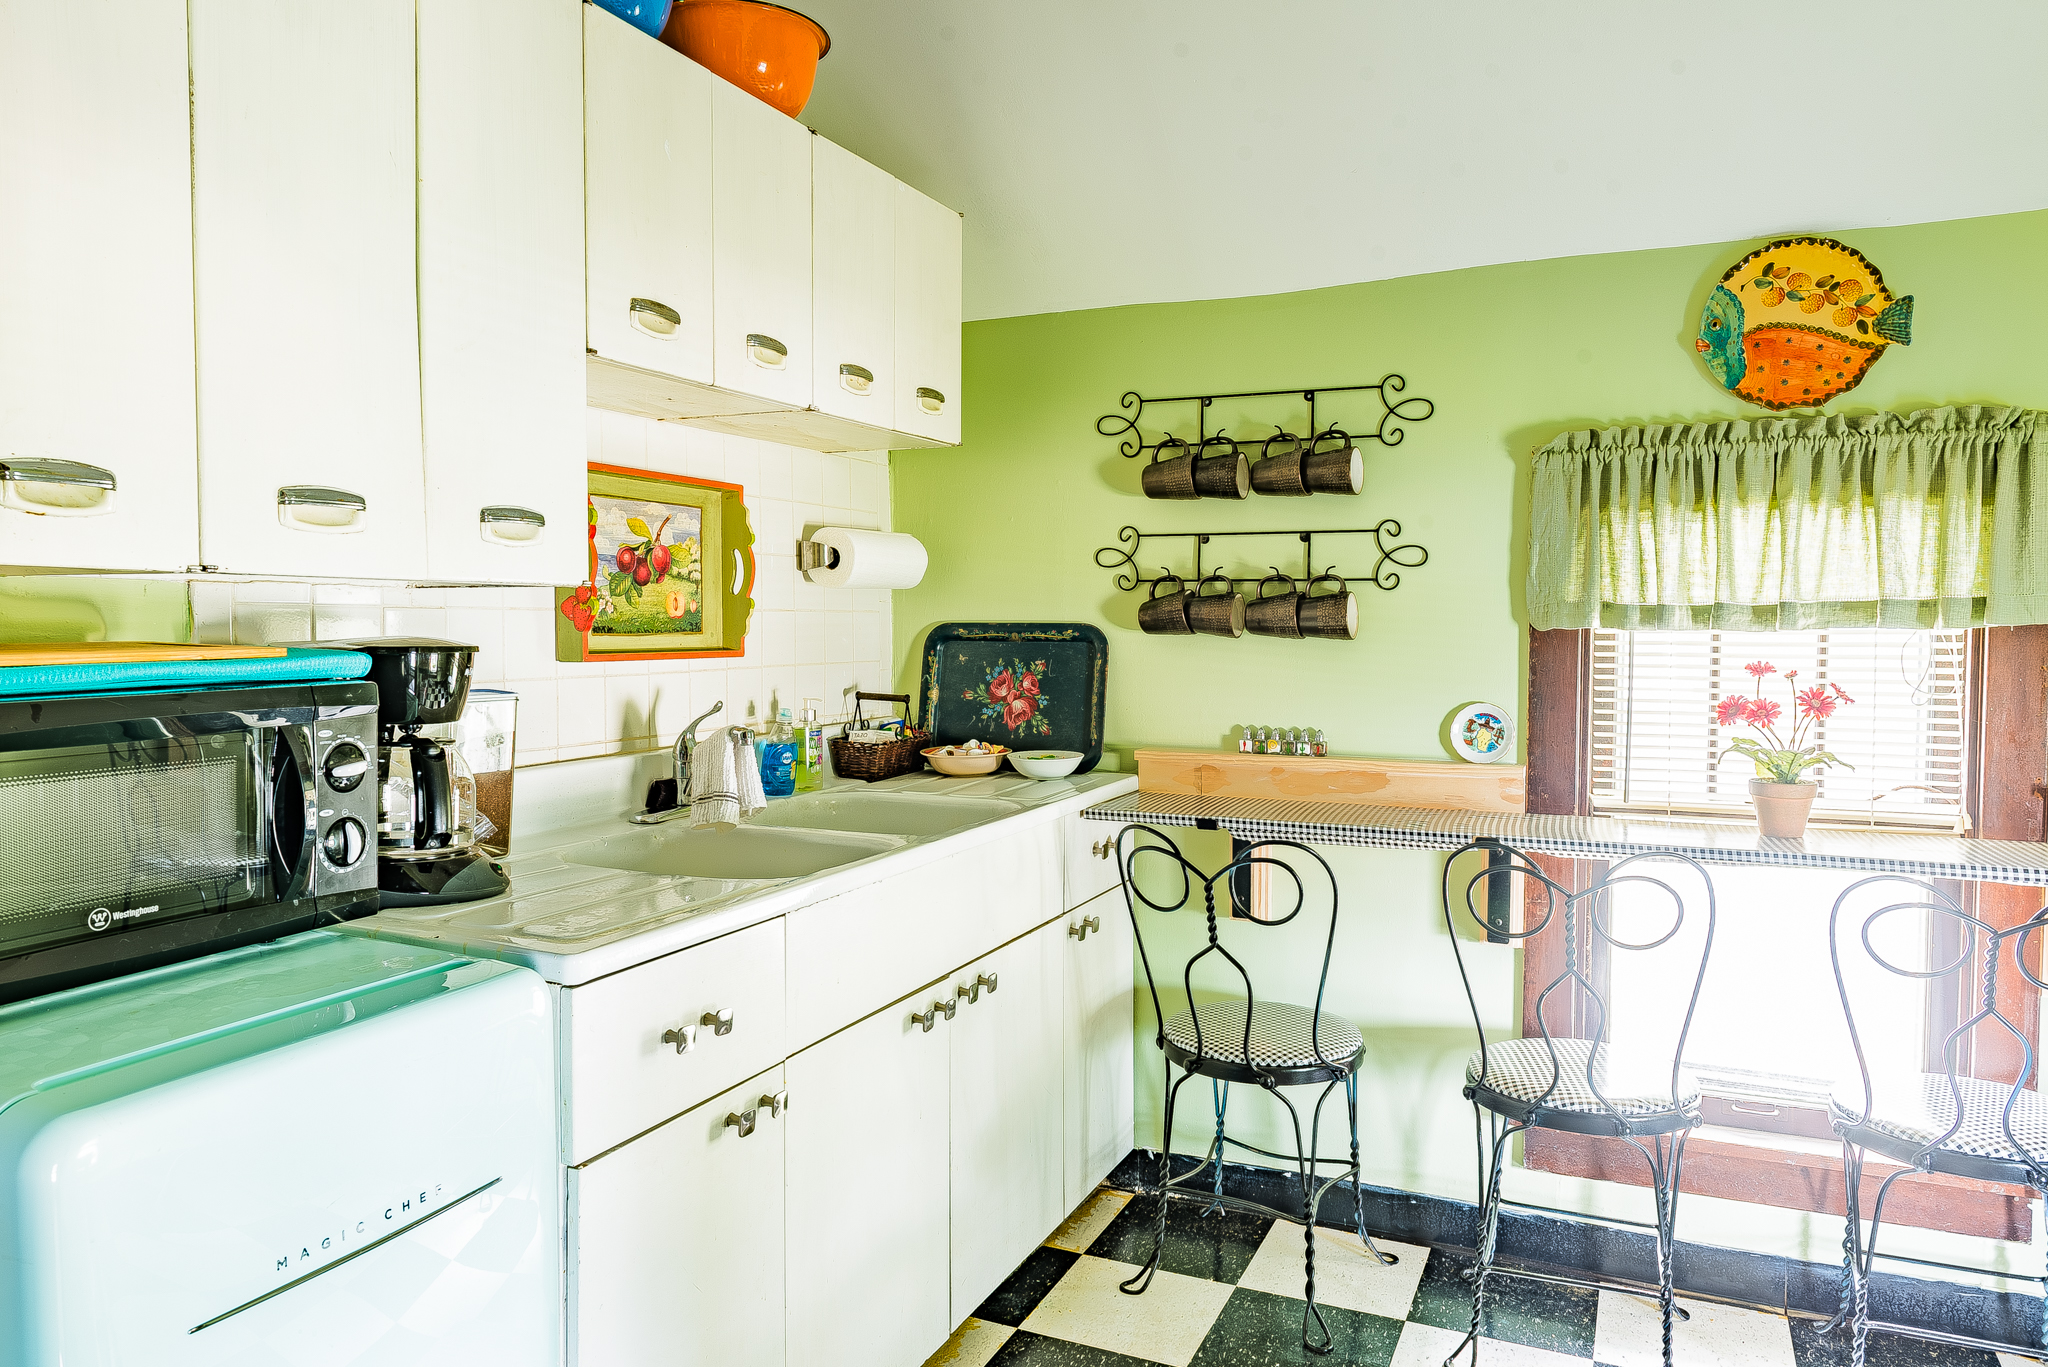 Kitchenette area including mini fridge, microwave, coffee maker and toaster. No stove in this unit!